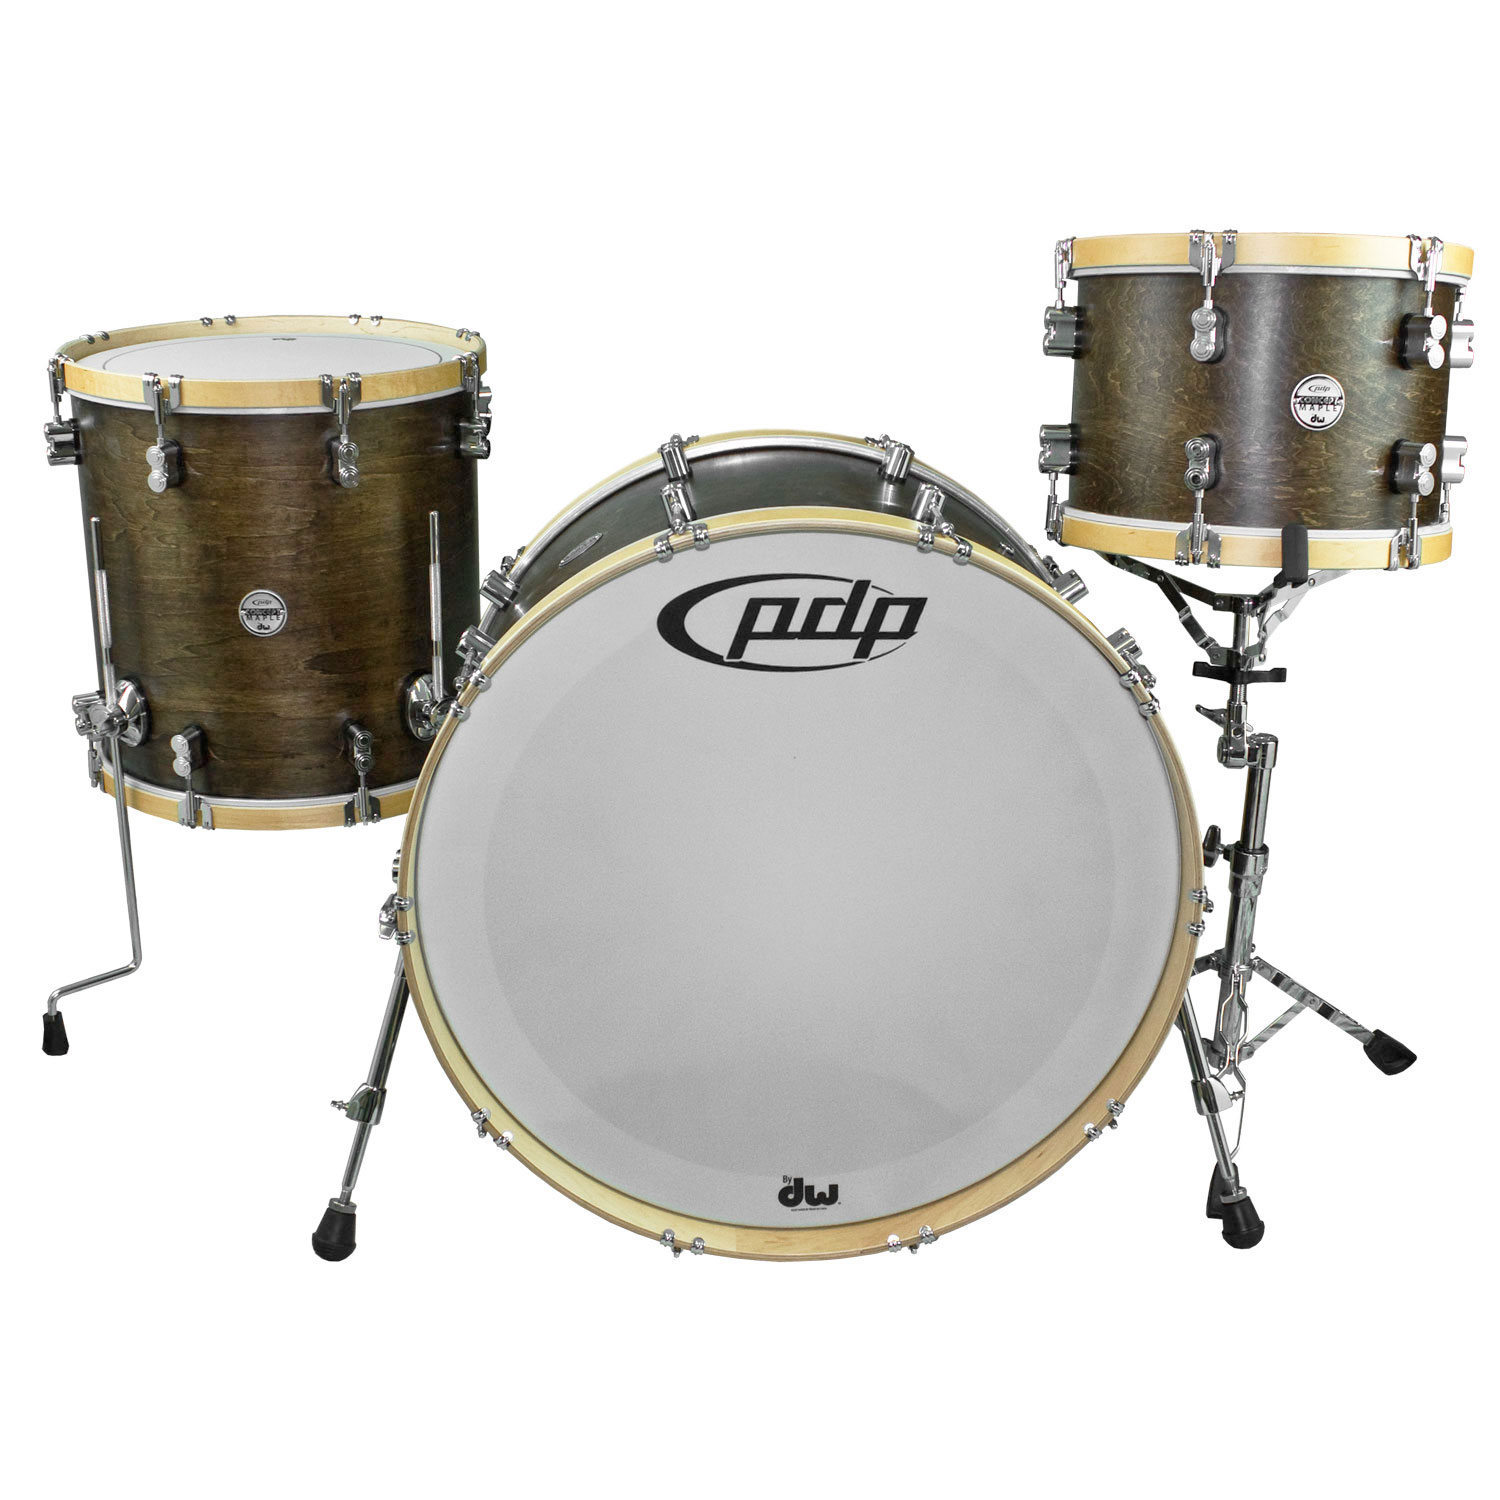 """PDP 3-Piece Concept Maple Classic Drum Set Shell Pack (26"""" Bass, 13/16"""" Toms) in Tobacco with Natural Hoops (PASIC 2017 Demo)"""